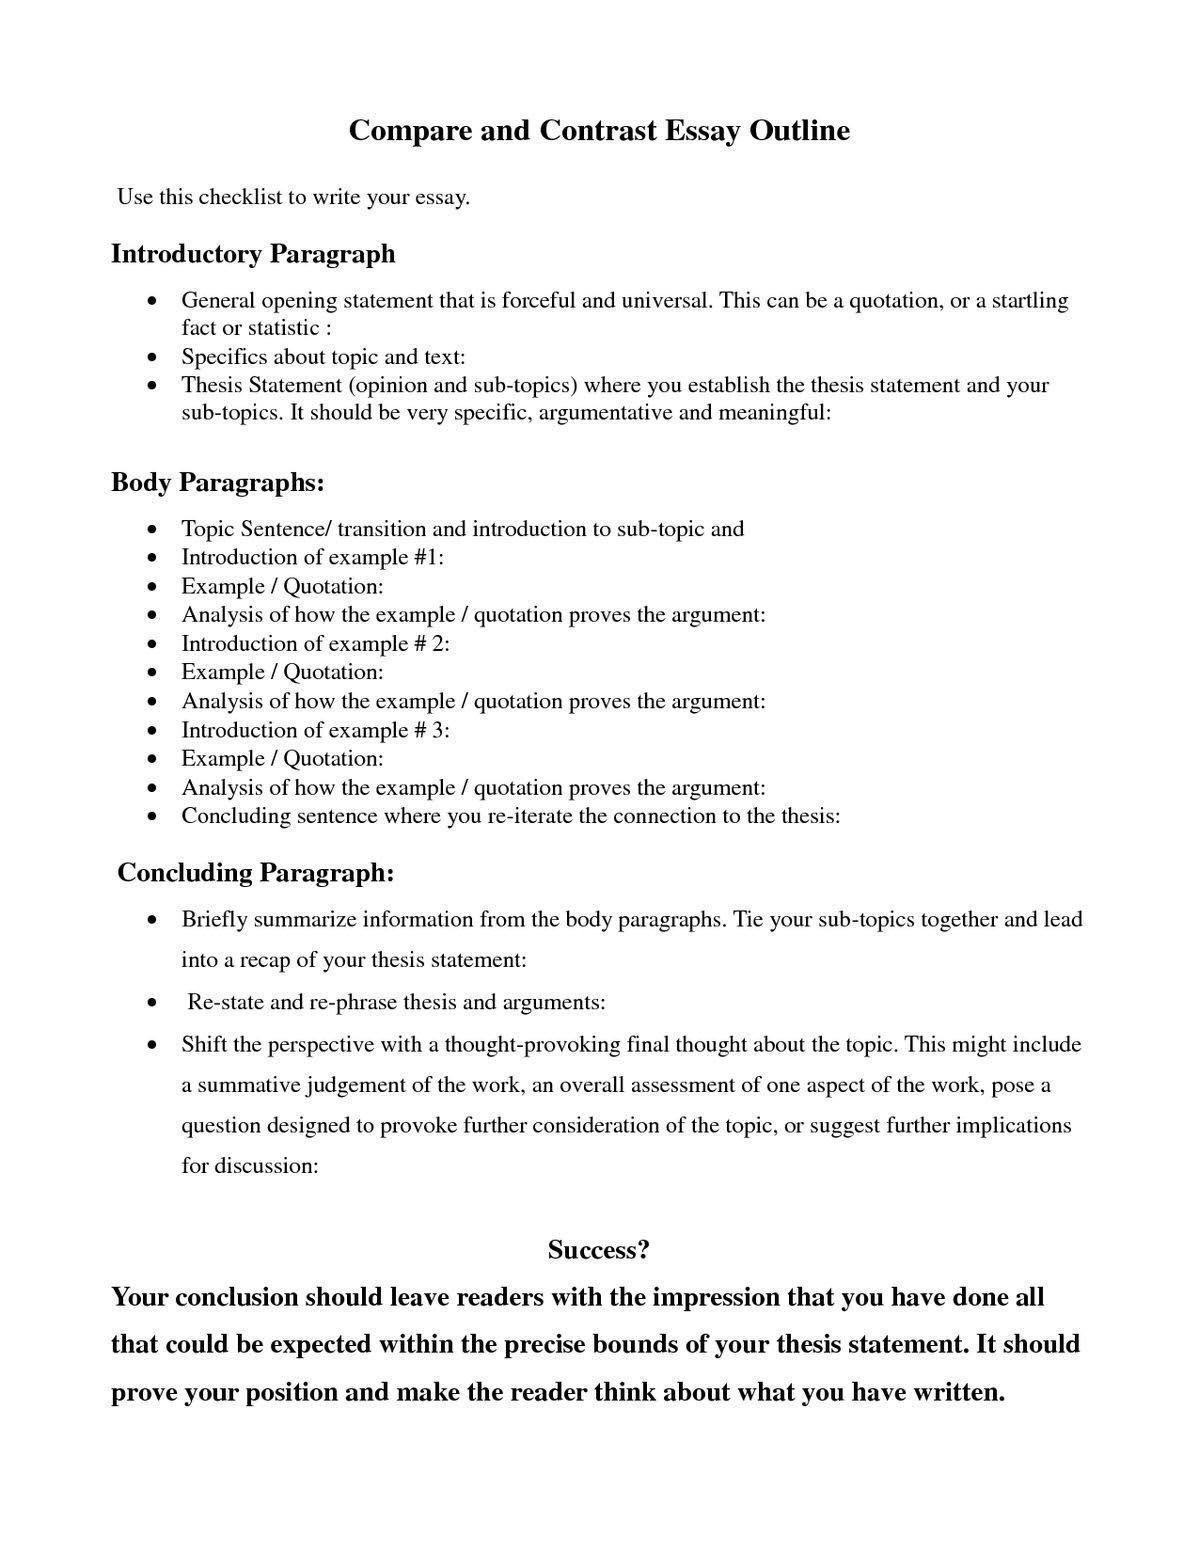 Pin For Later How To Write A Personal Statement College Essay Prompts Uc Personal Statement College Applicati In 2021 Essay Outline Thesis Statement Essay Examples How to write compare and contrast essay